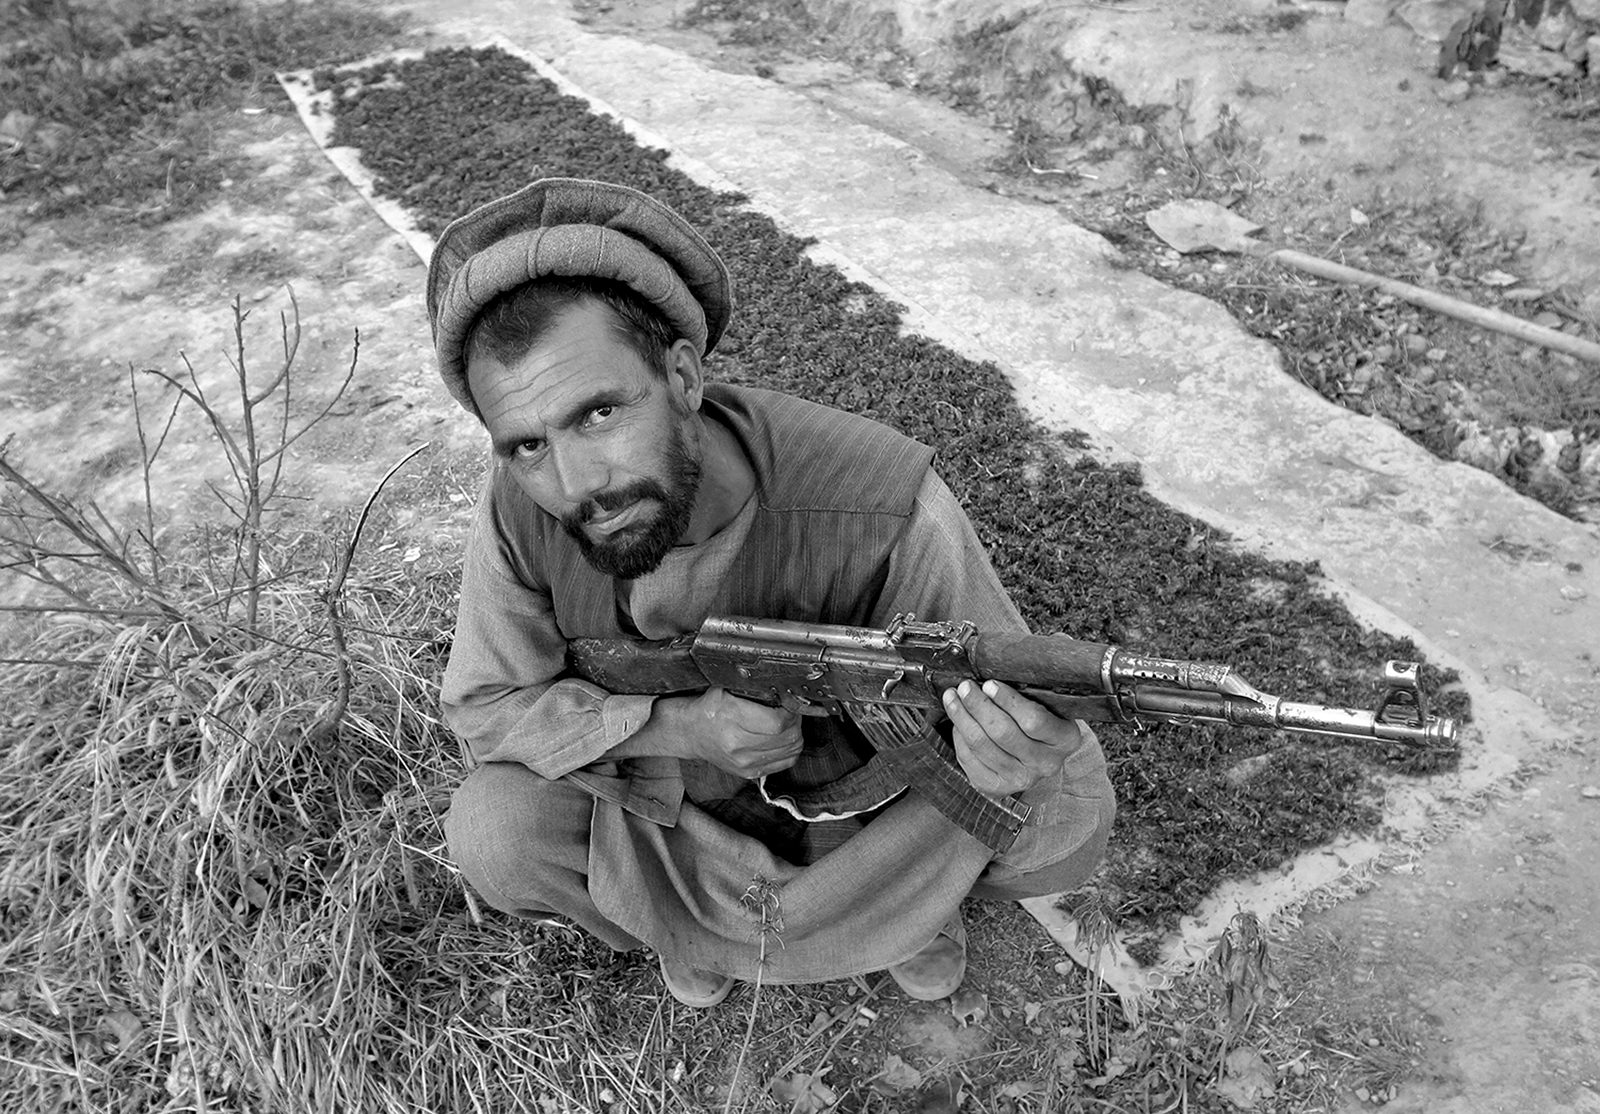 Afghanistan and the AK-47